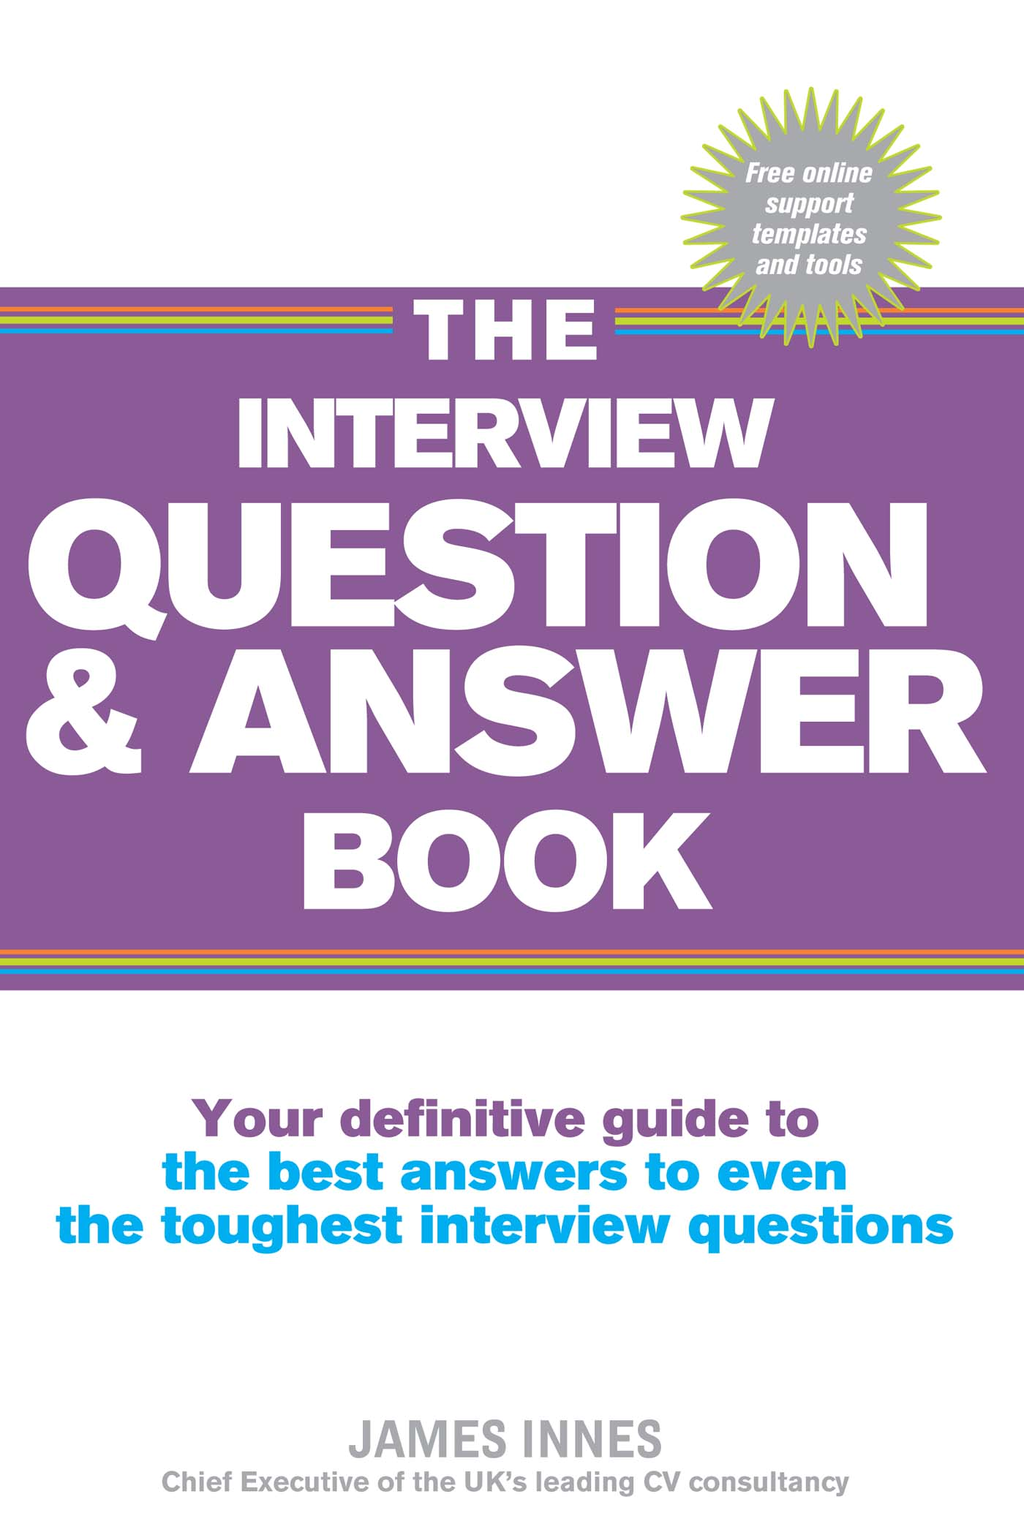 The Interview Question & Answer Book Your definitive guide to the best answers to even the toughest interview question